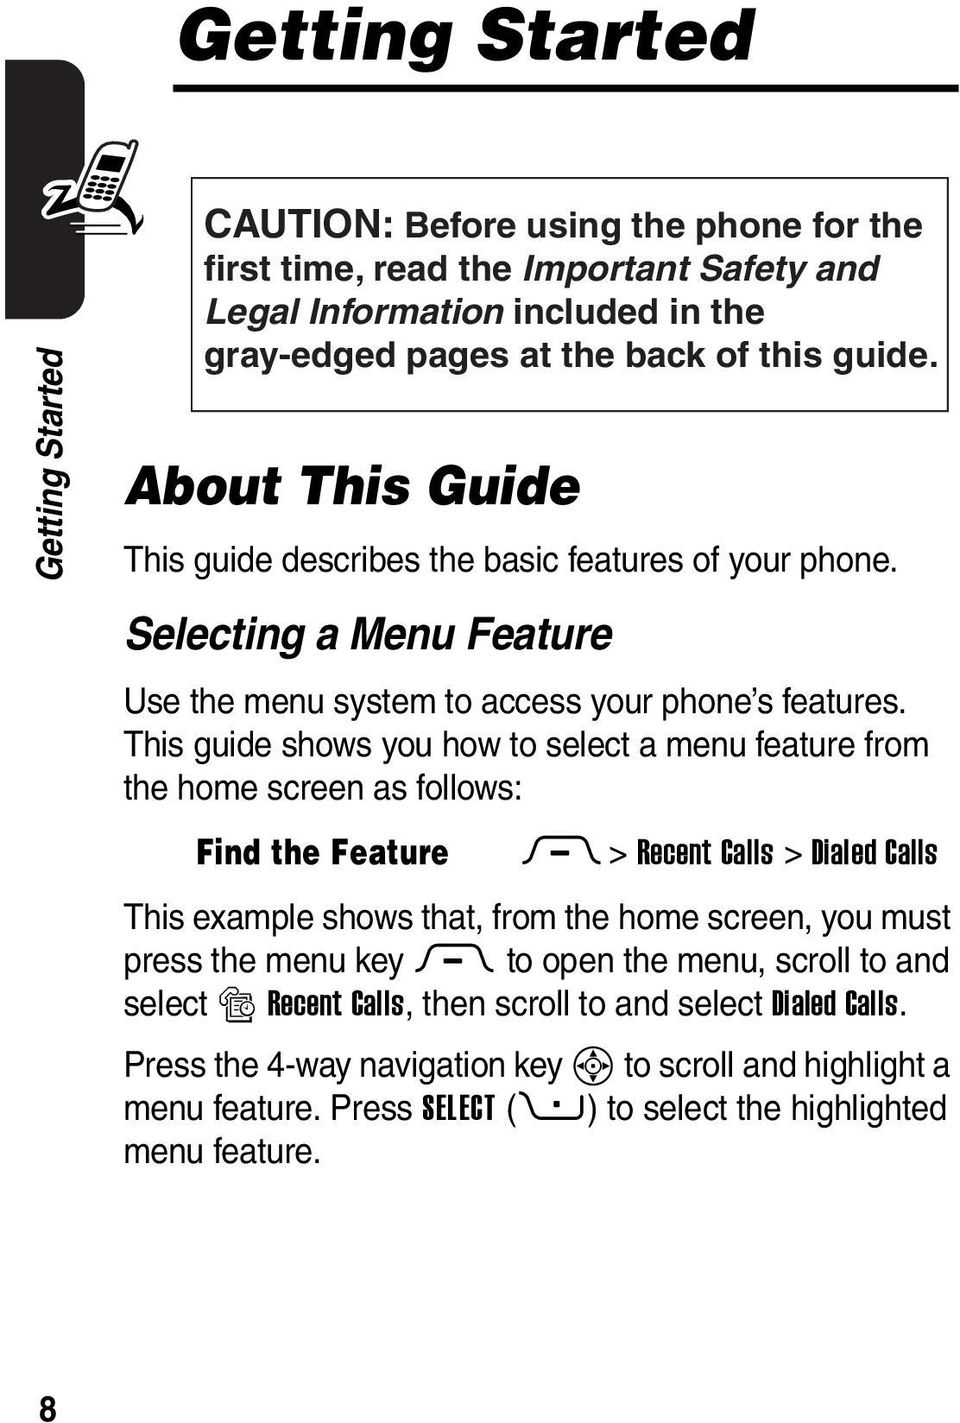 This guide shows you how to select a menu feature from the home screen as follows: Find the Feature M > Recent Calls > Dialed Calls This example shows that, from the home screen, you must press